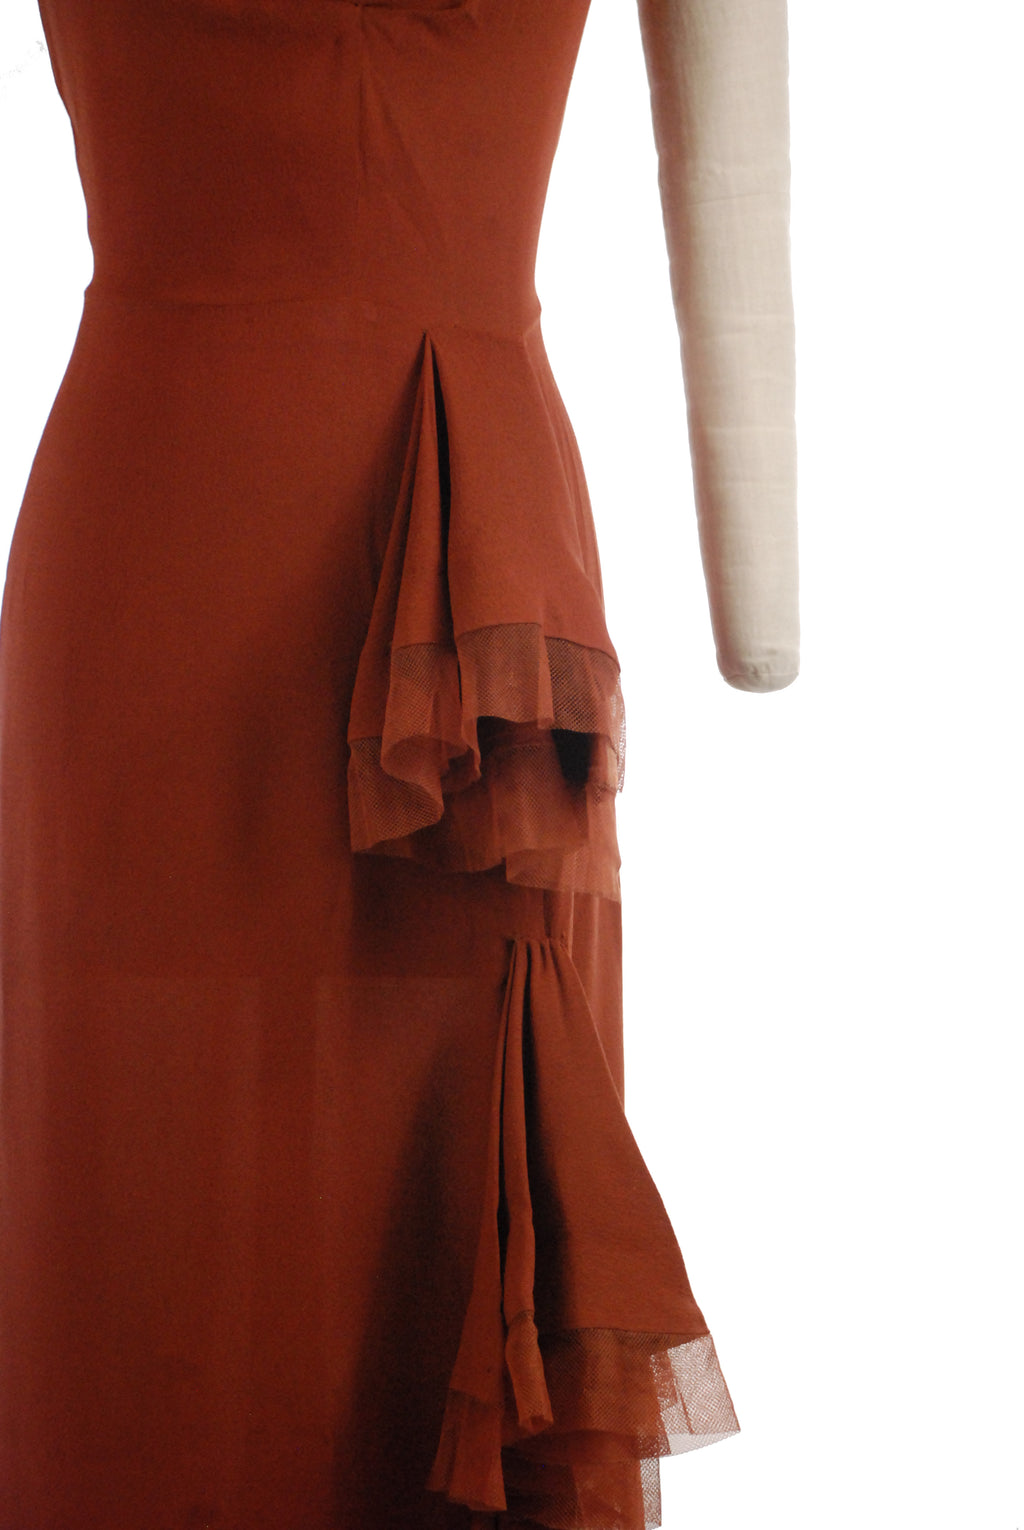 Elegant 1940s Evening Gown in Rust Brown Rayon Crepe with Silk Tulle Trim